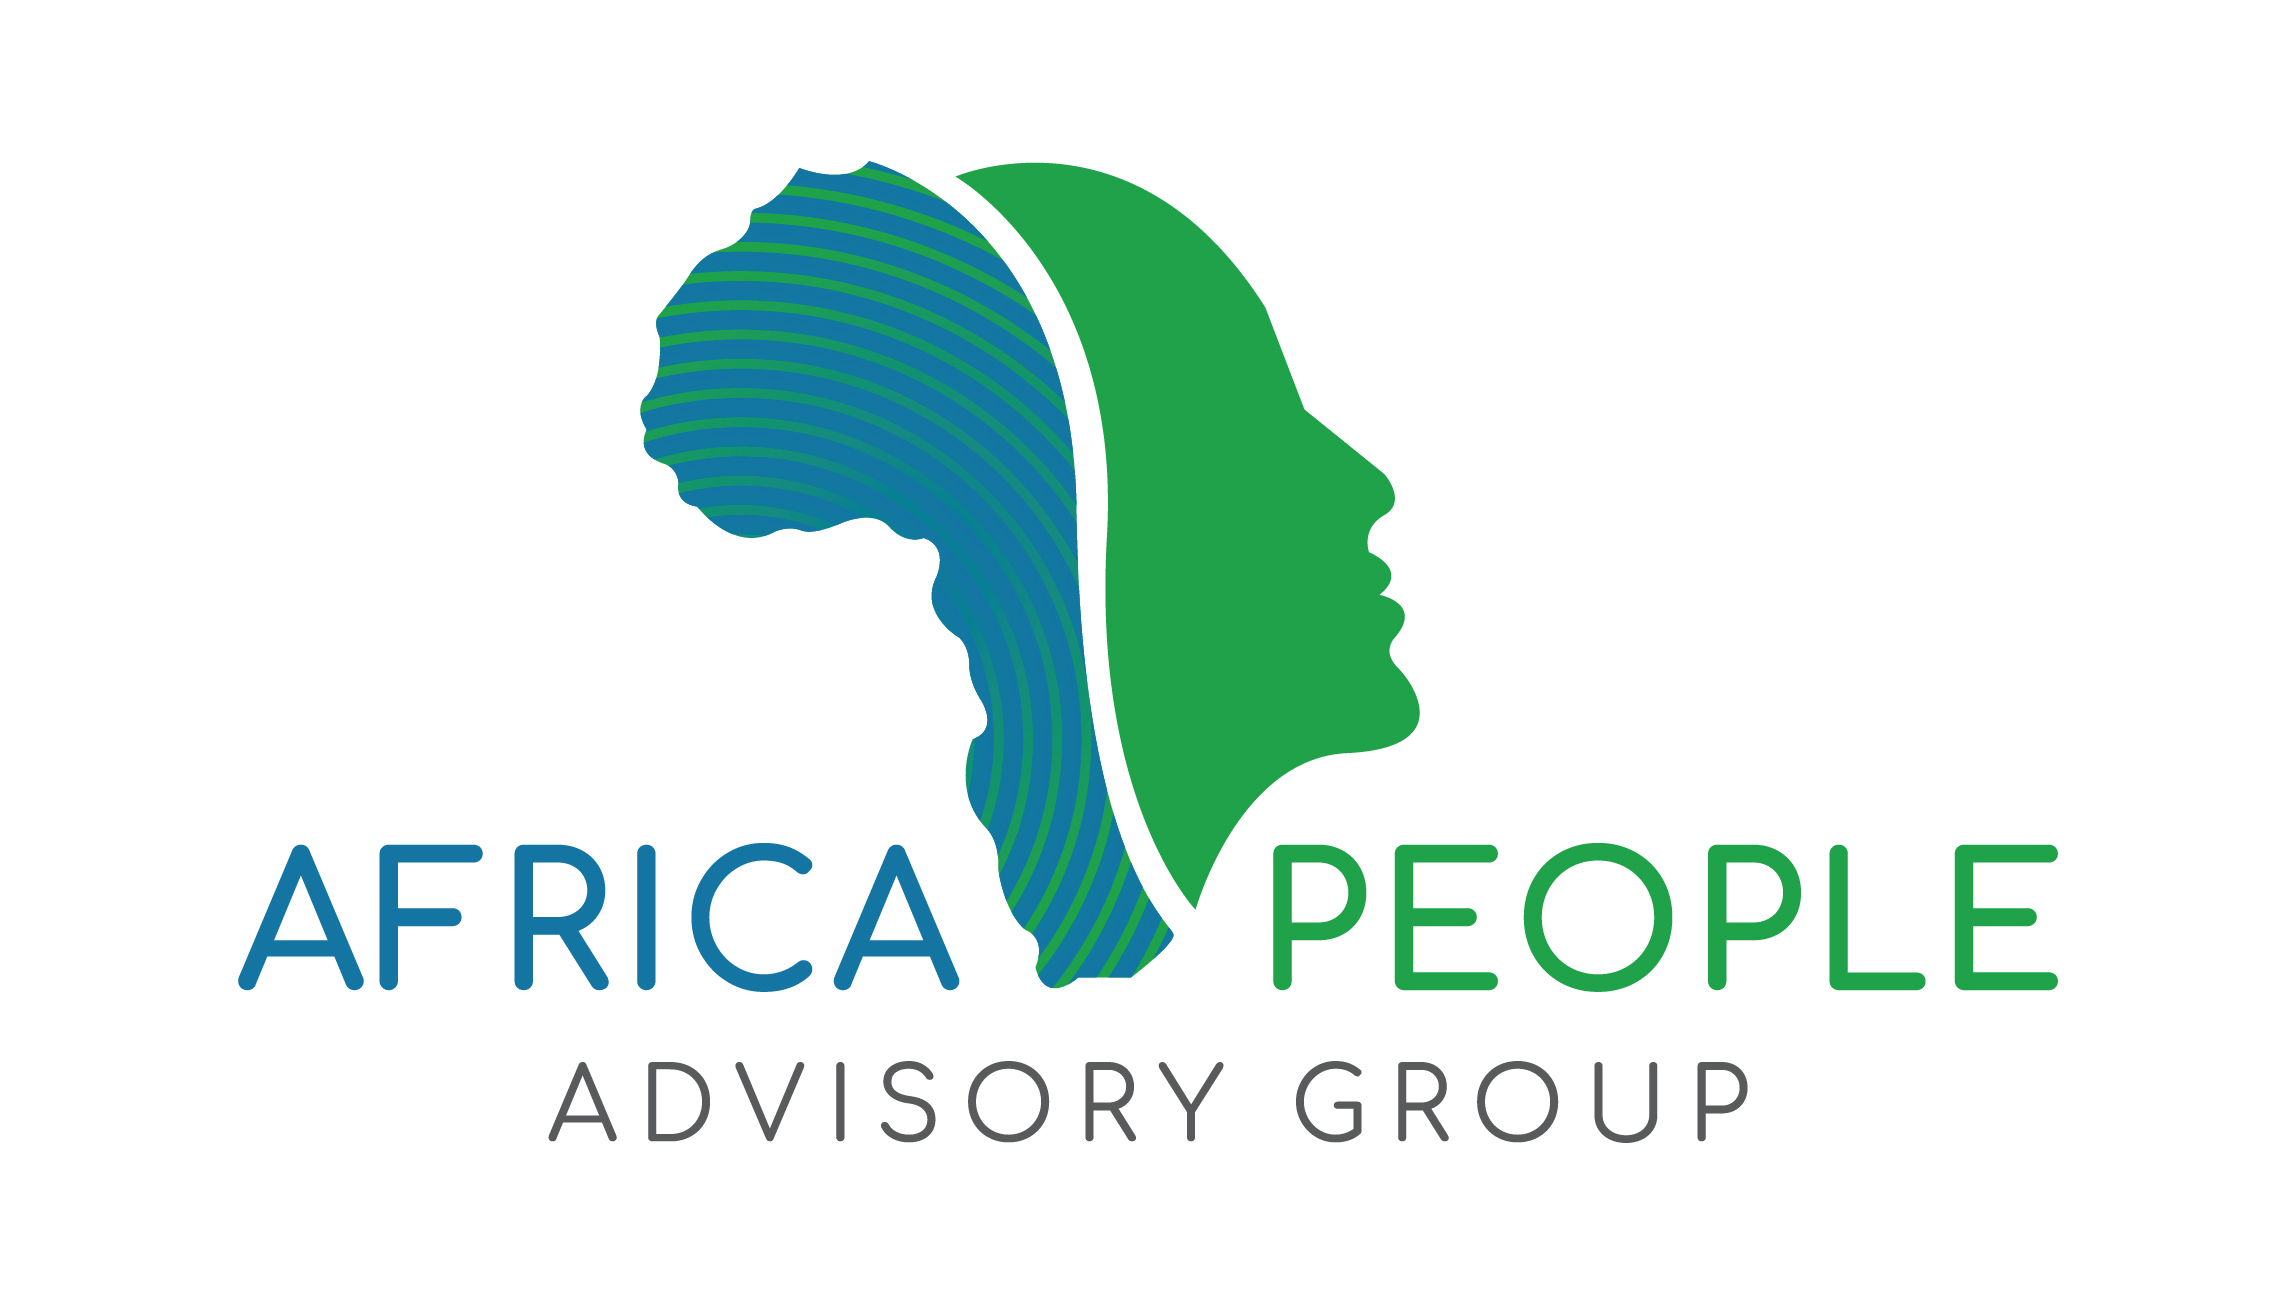 African People Advisory Group